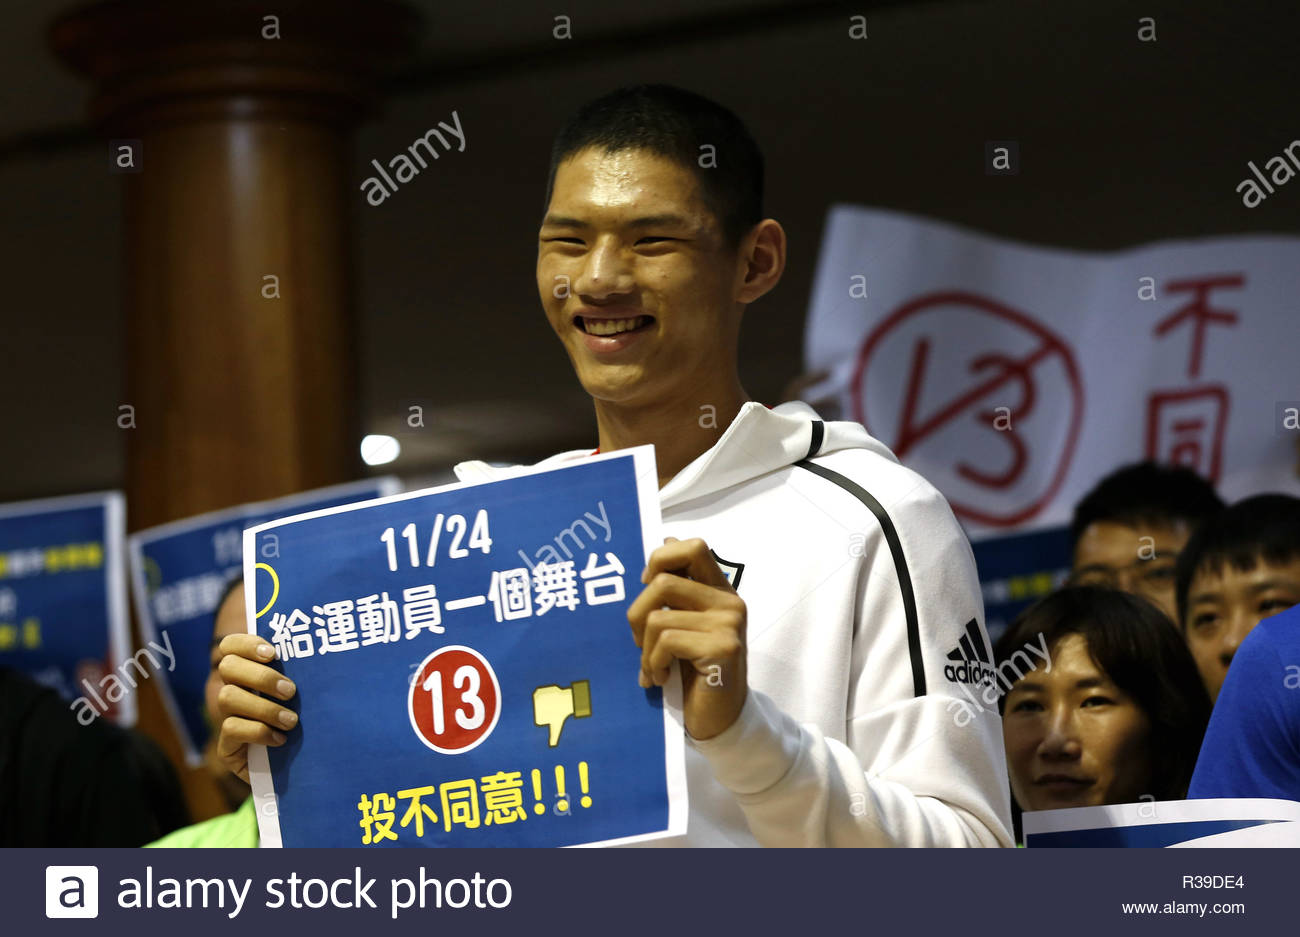 Top News Events Of 2020.Taipei 21st Nov 2018 The Athletes From Taiwan Protest The Rename